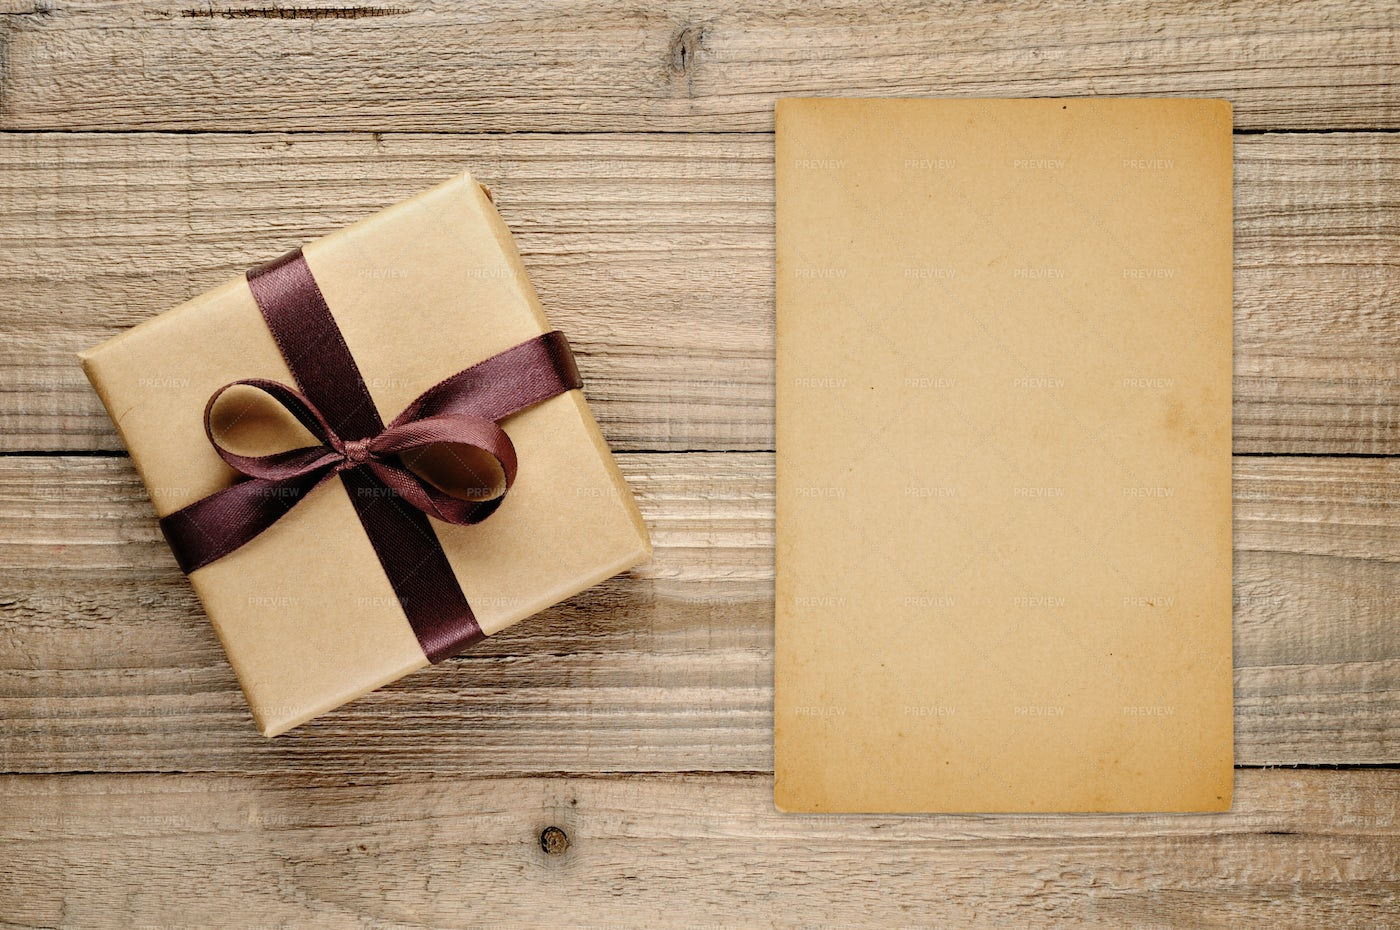 Vintage Gift Box And Blank Card: Stock Photos